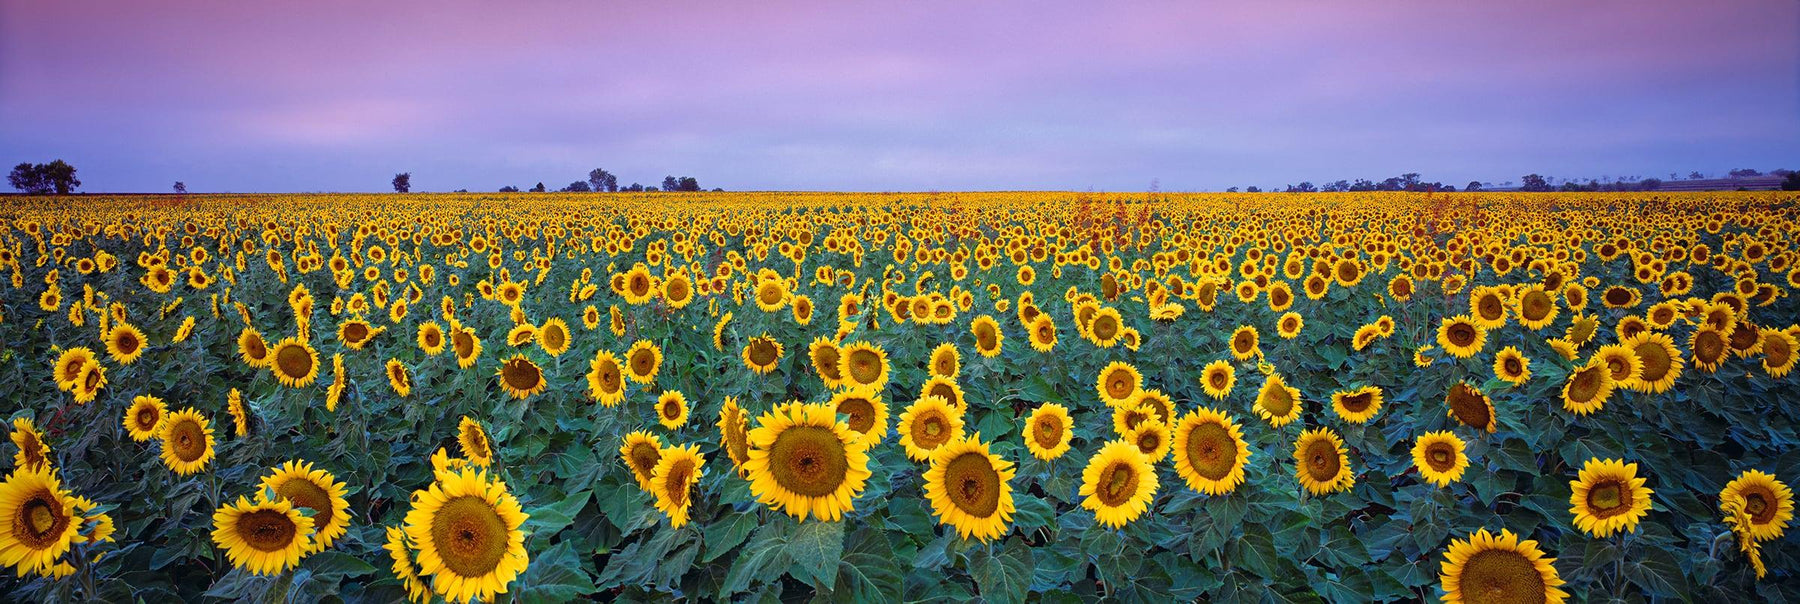 Sunflowers by Peter Lik is a landscape photograph of a field of sunflowers in Queensland Australia during a sunset